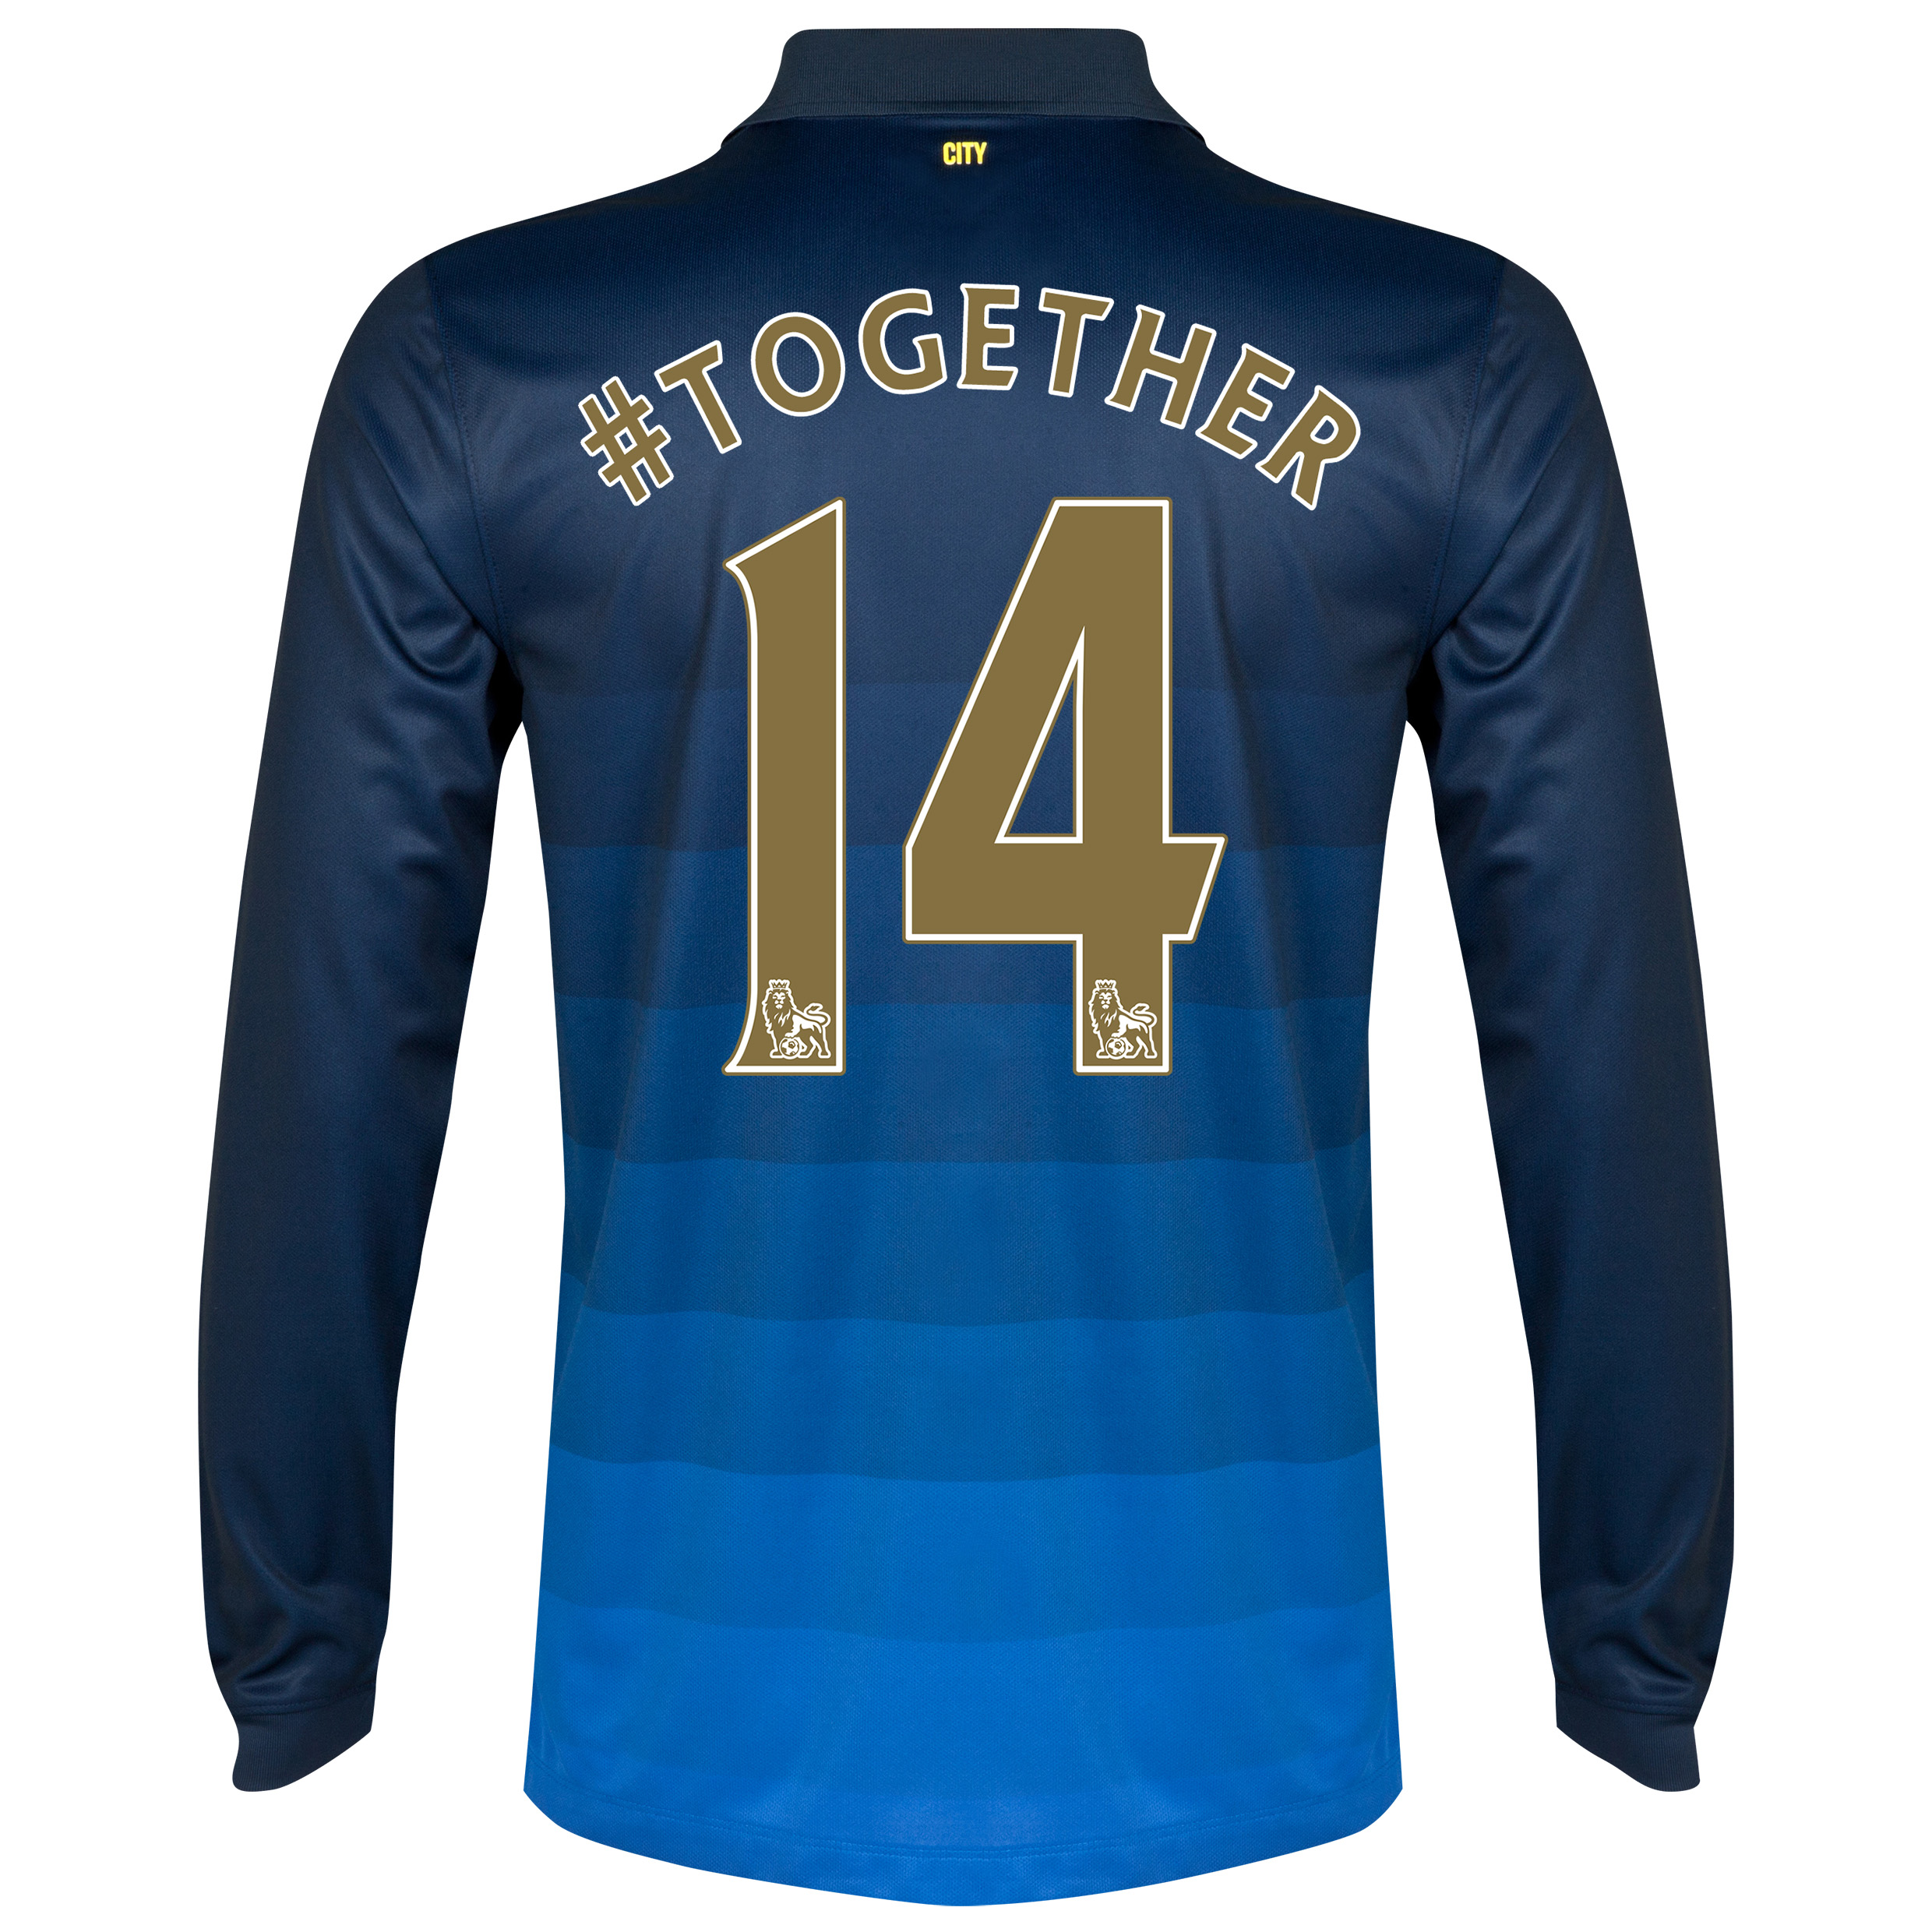 Manchester City Away Shirt 2014/15 - Long Sleeve Dk Blue with Champions 14 printing